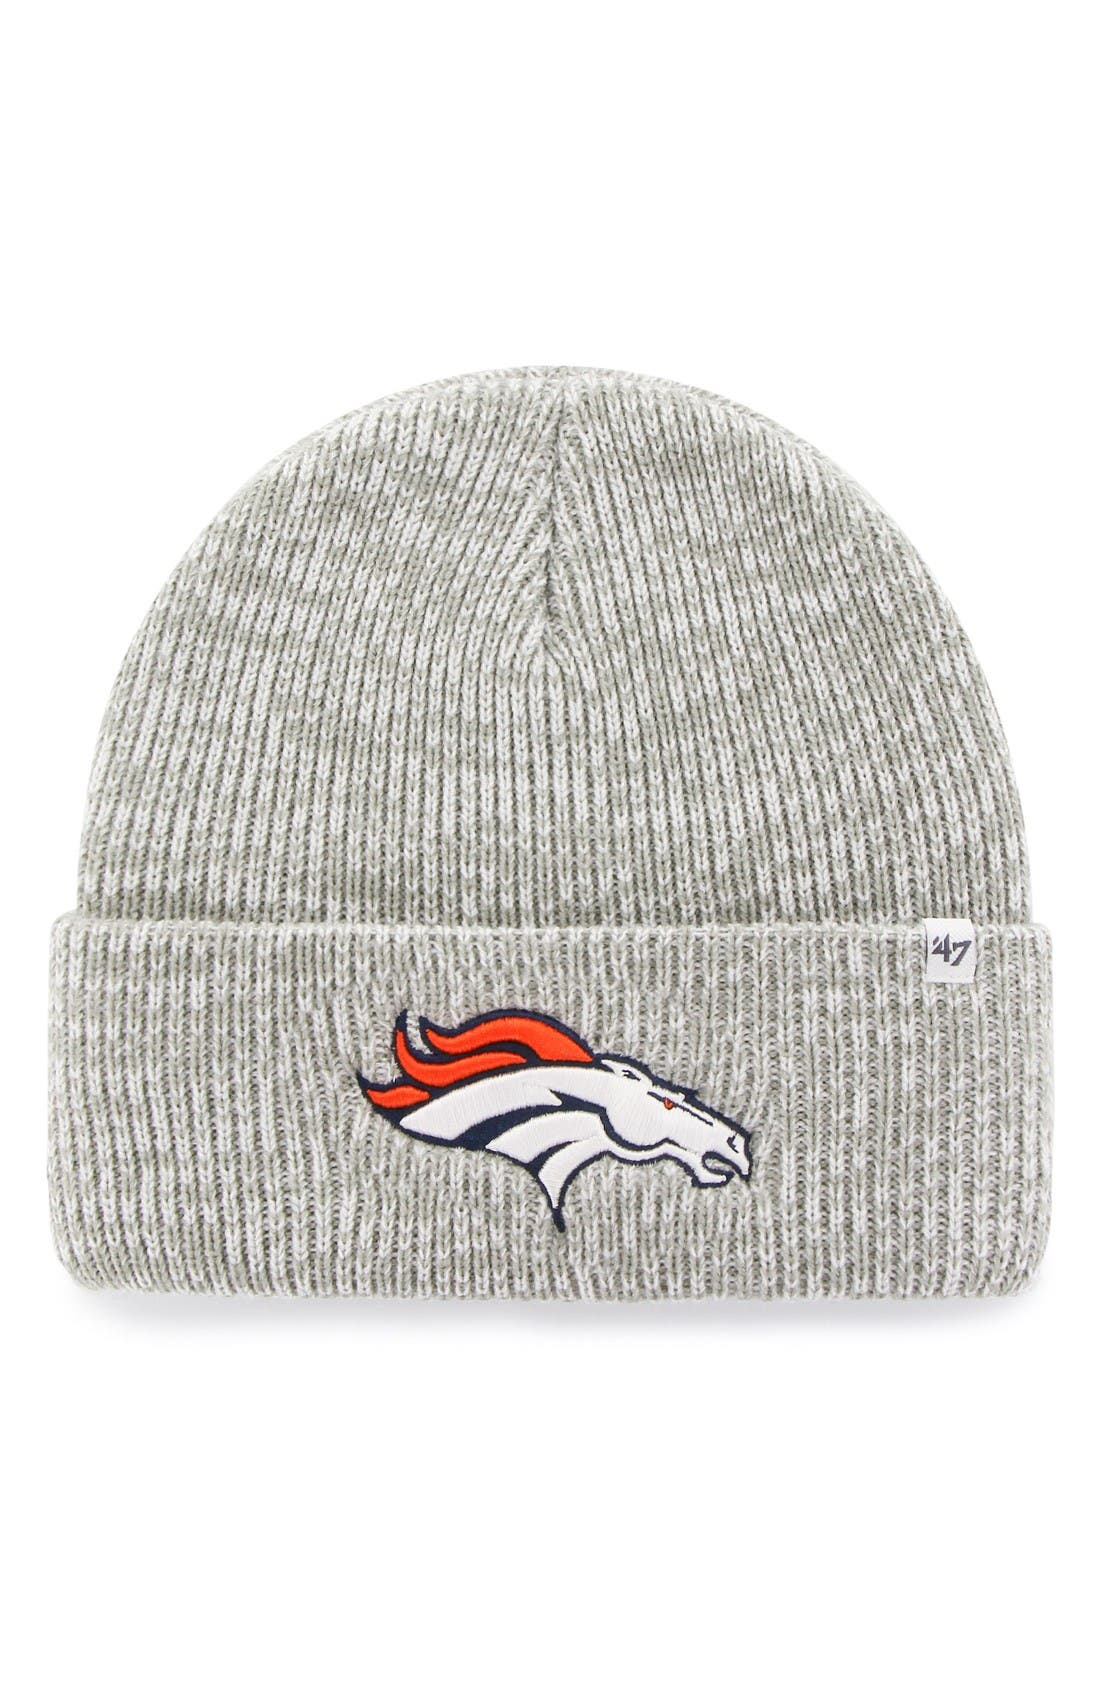 NFL Brainfreeze Knit Beanie,                             Main thumbnail 1, color,                             Broncos